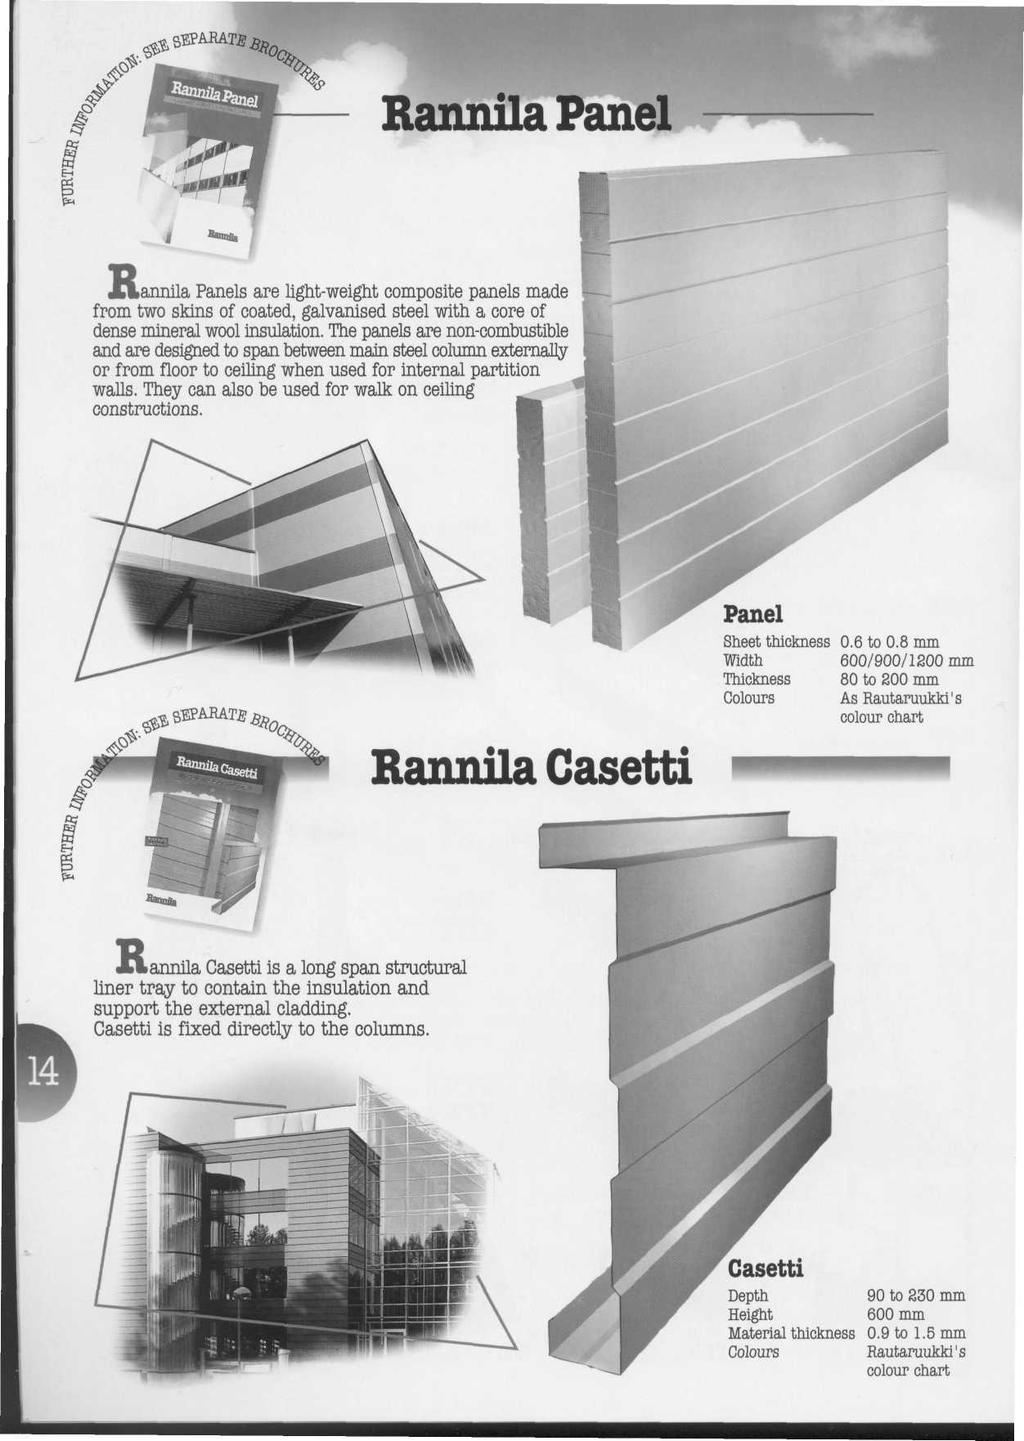 Rannila Panel Lannila Panels are light-weight composite panels made from two skins of coated, galvanised steel with a core of dense mineral wool insulation.